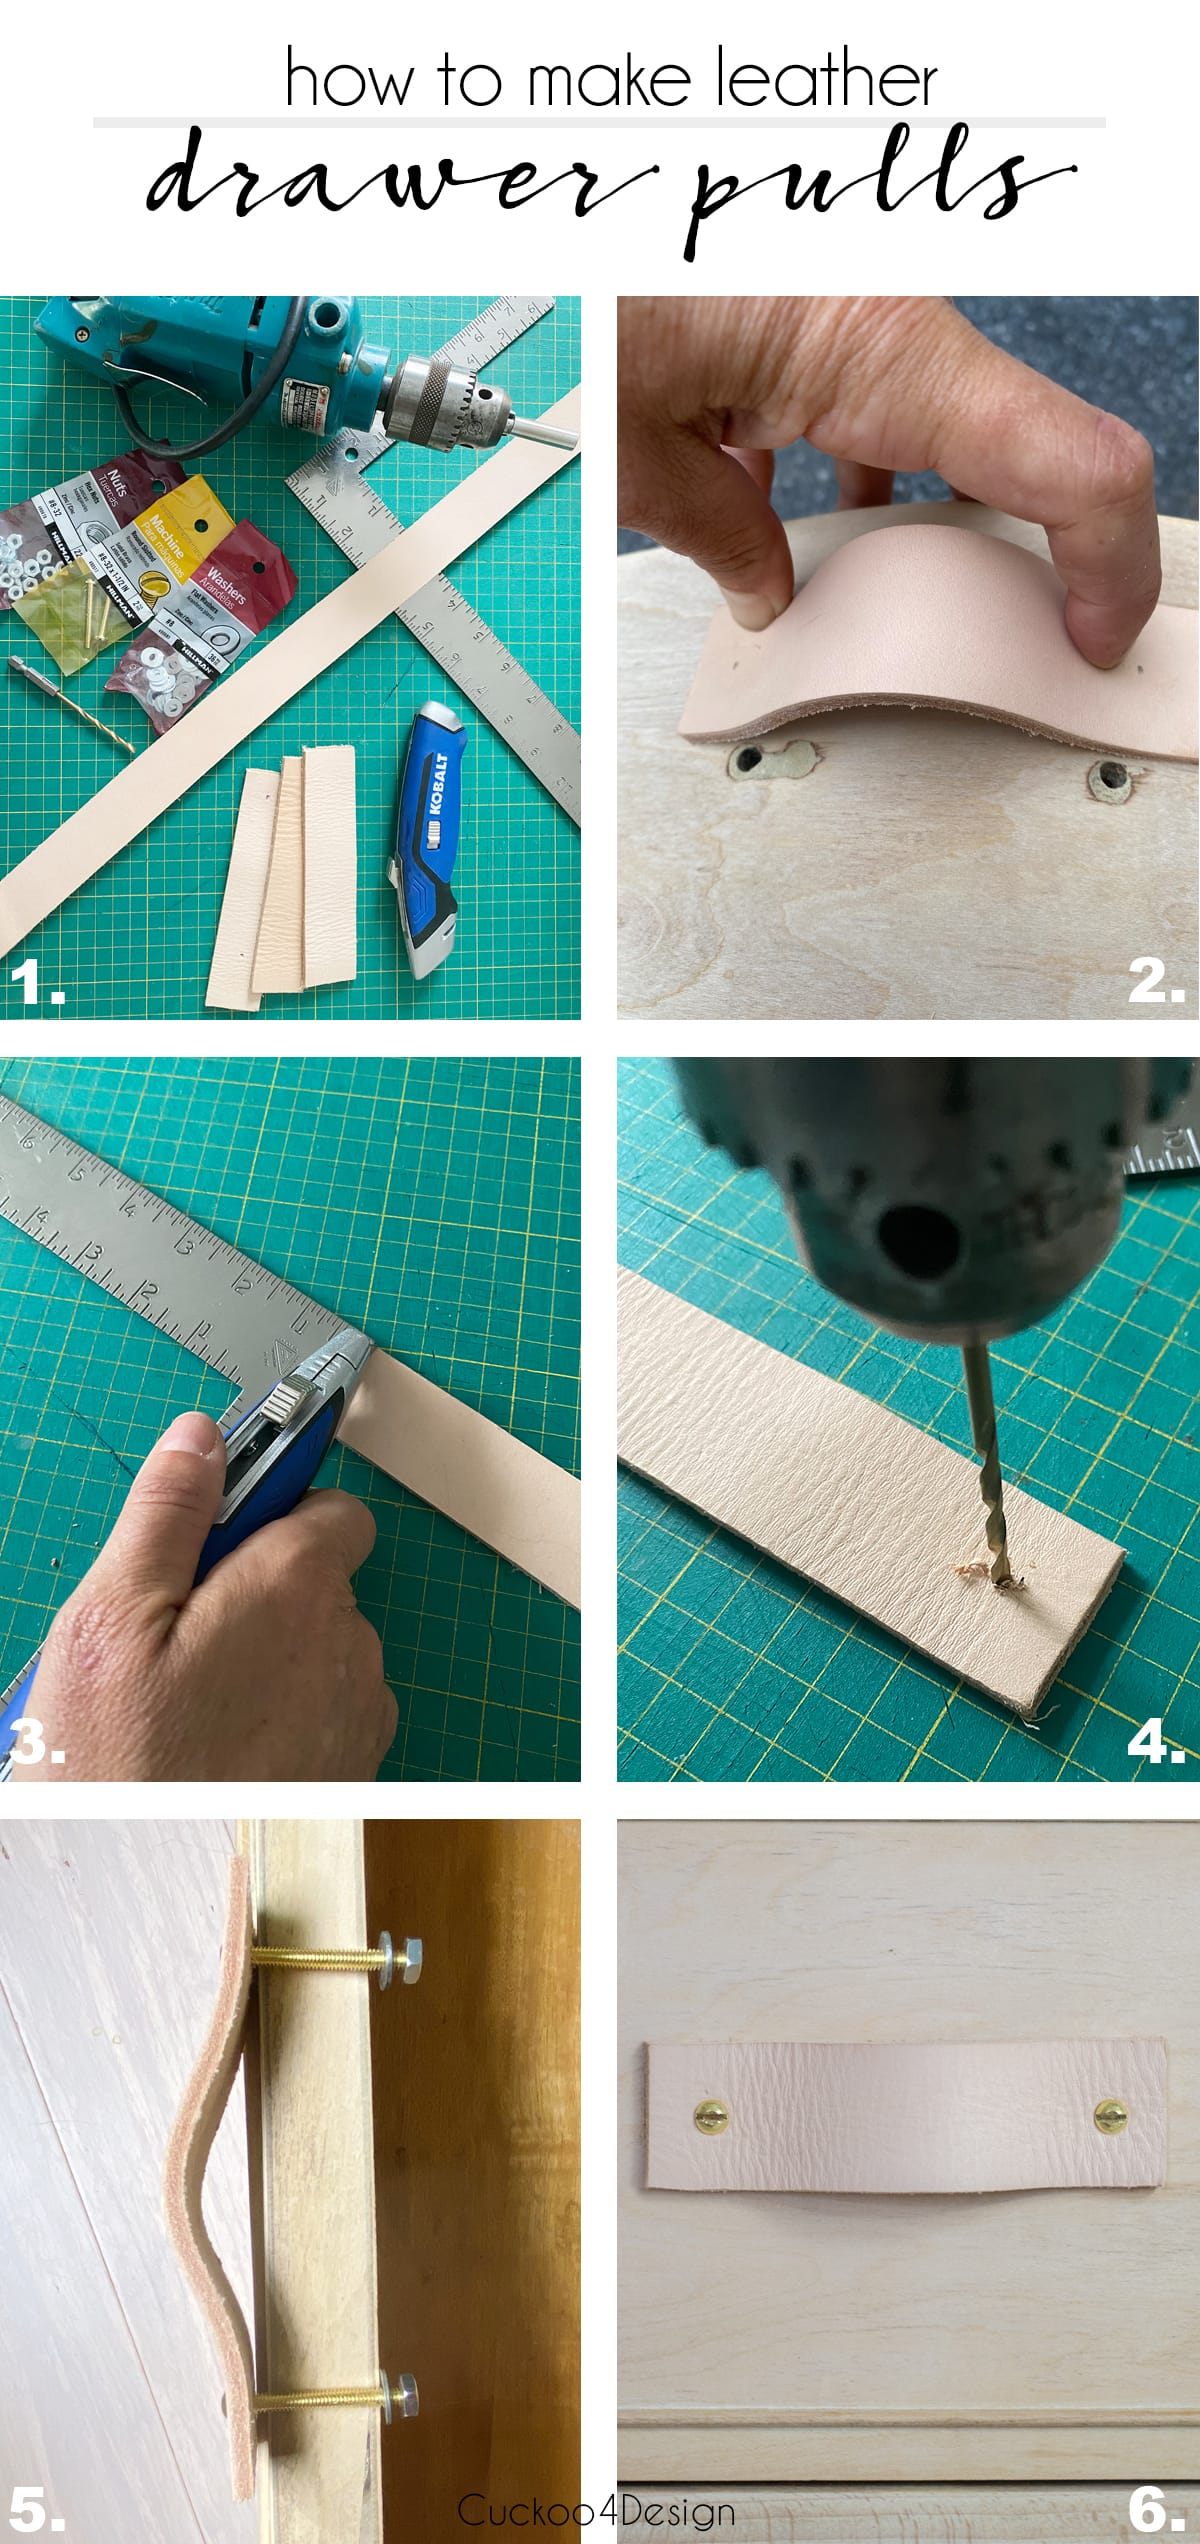 detailed steps about how to make leather drawer pulls